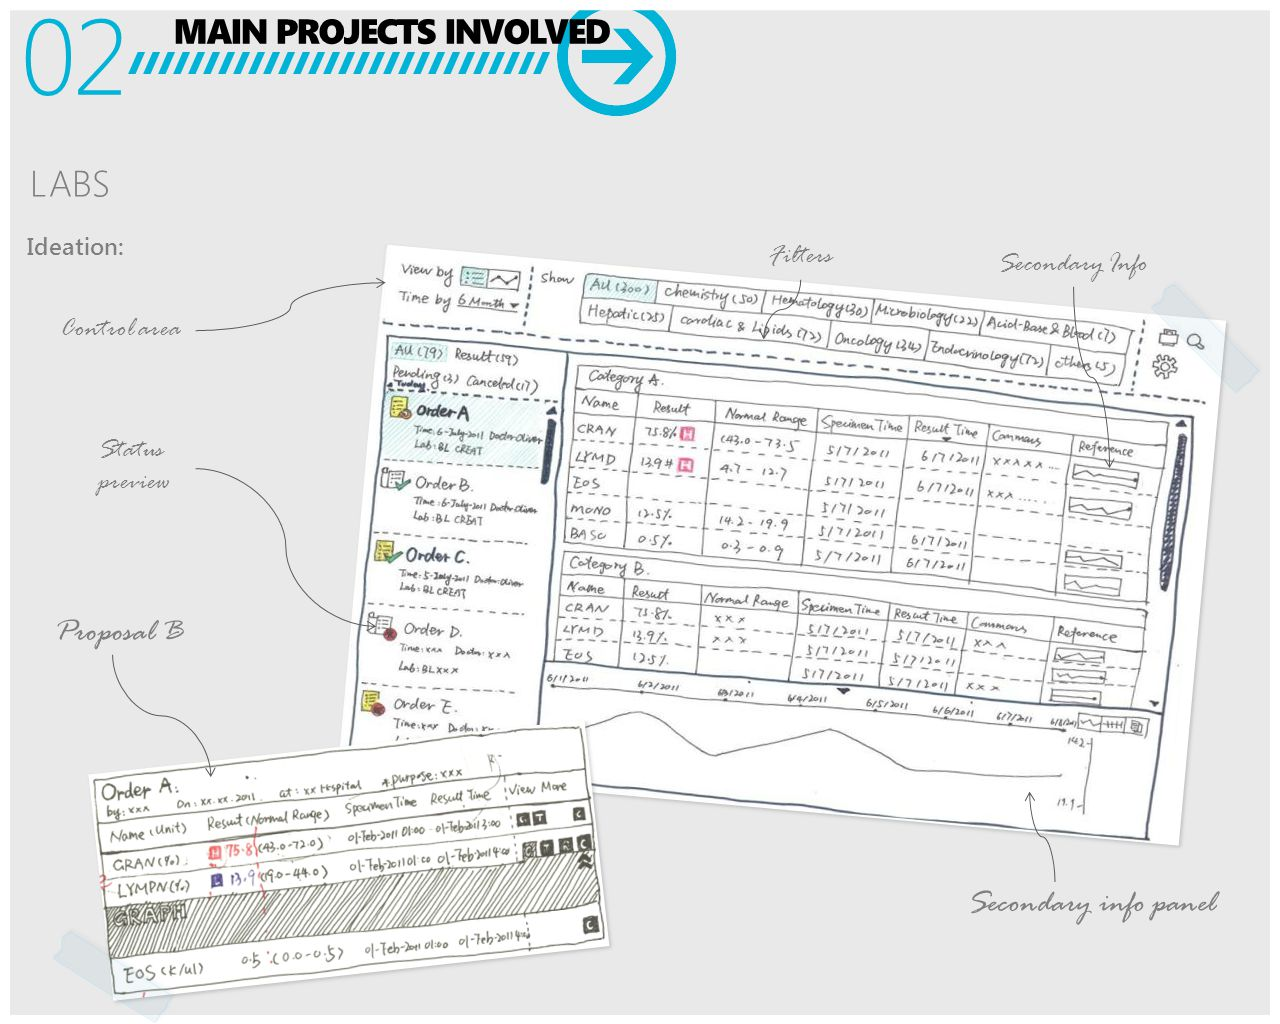 MAIN PROJECTS INVOLVED 02 Proposal B Control area Filters Secondary info panel Ideation: LABS Secondary Info Status preview